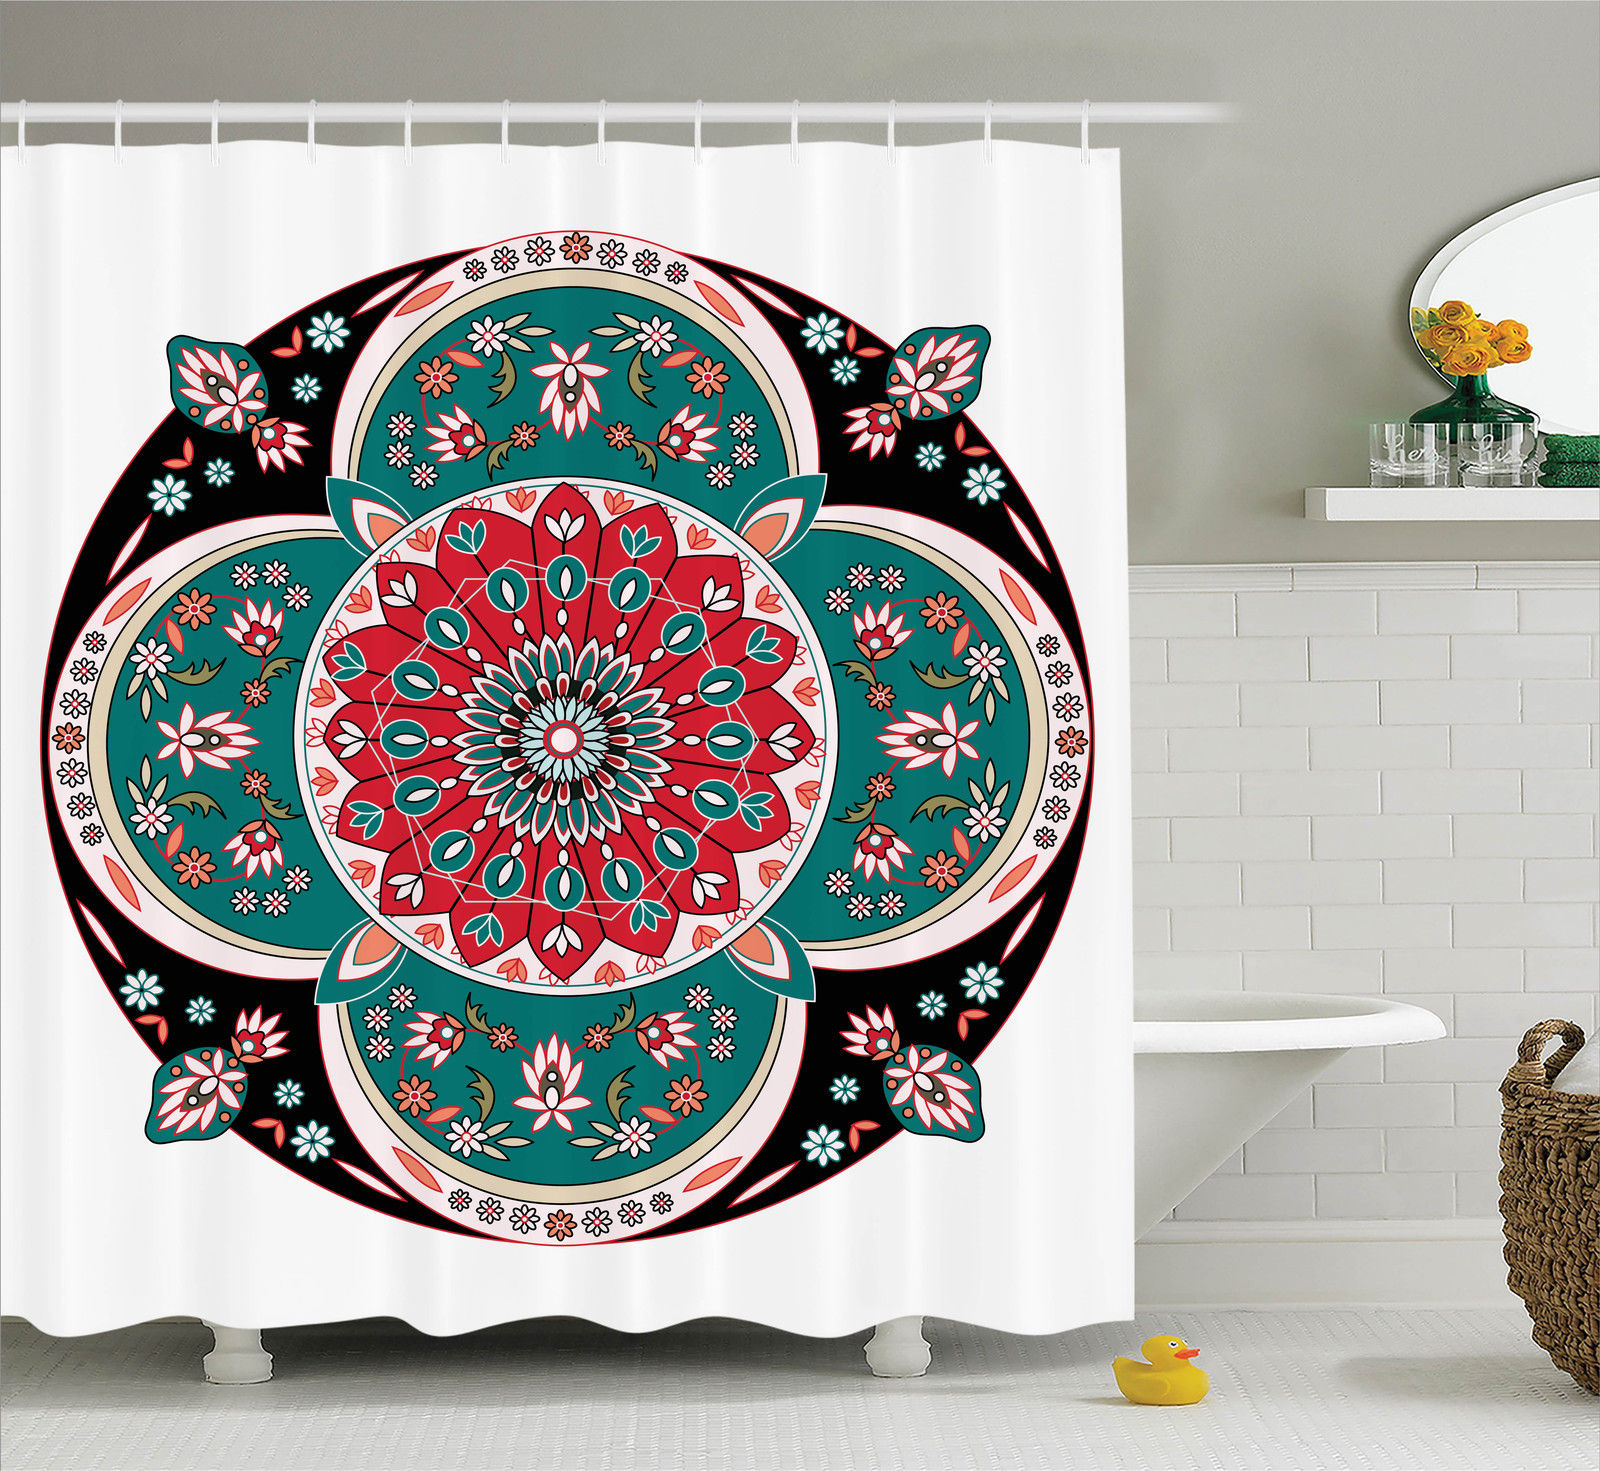 Arabian Decor  Oriental Ornate Embriodery Style Floral Ethnic Pattern Illustration Of Old Eastern Artistic, Bathroom Accessories, 69W X 84L Inches Extra Long, By Ambesonne